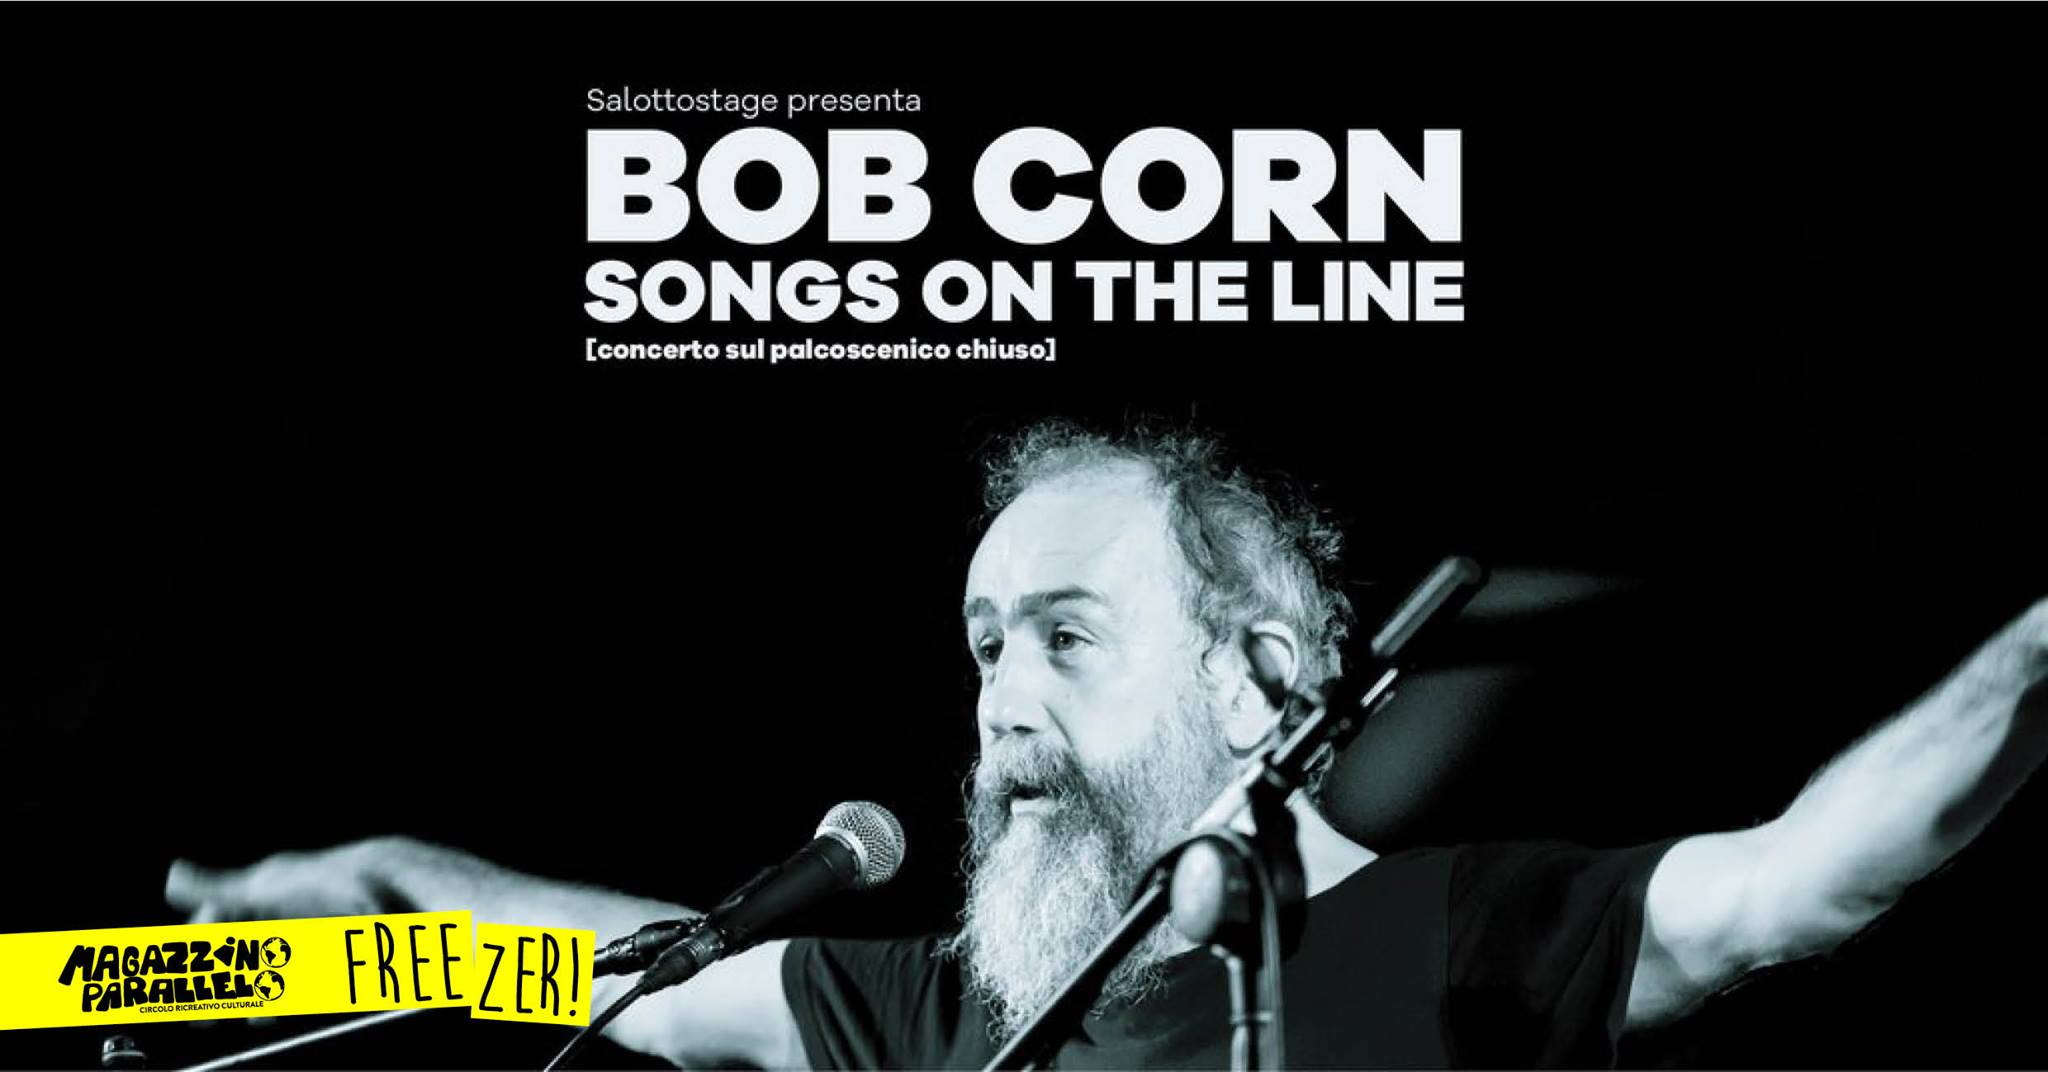 BOB CORN / Songs On The Line / at Freezer!